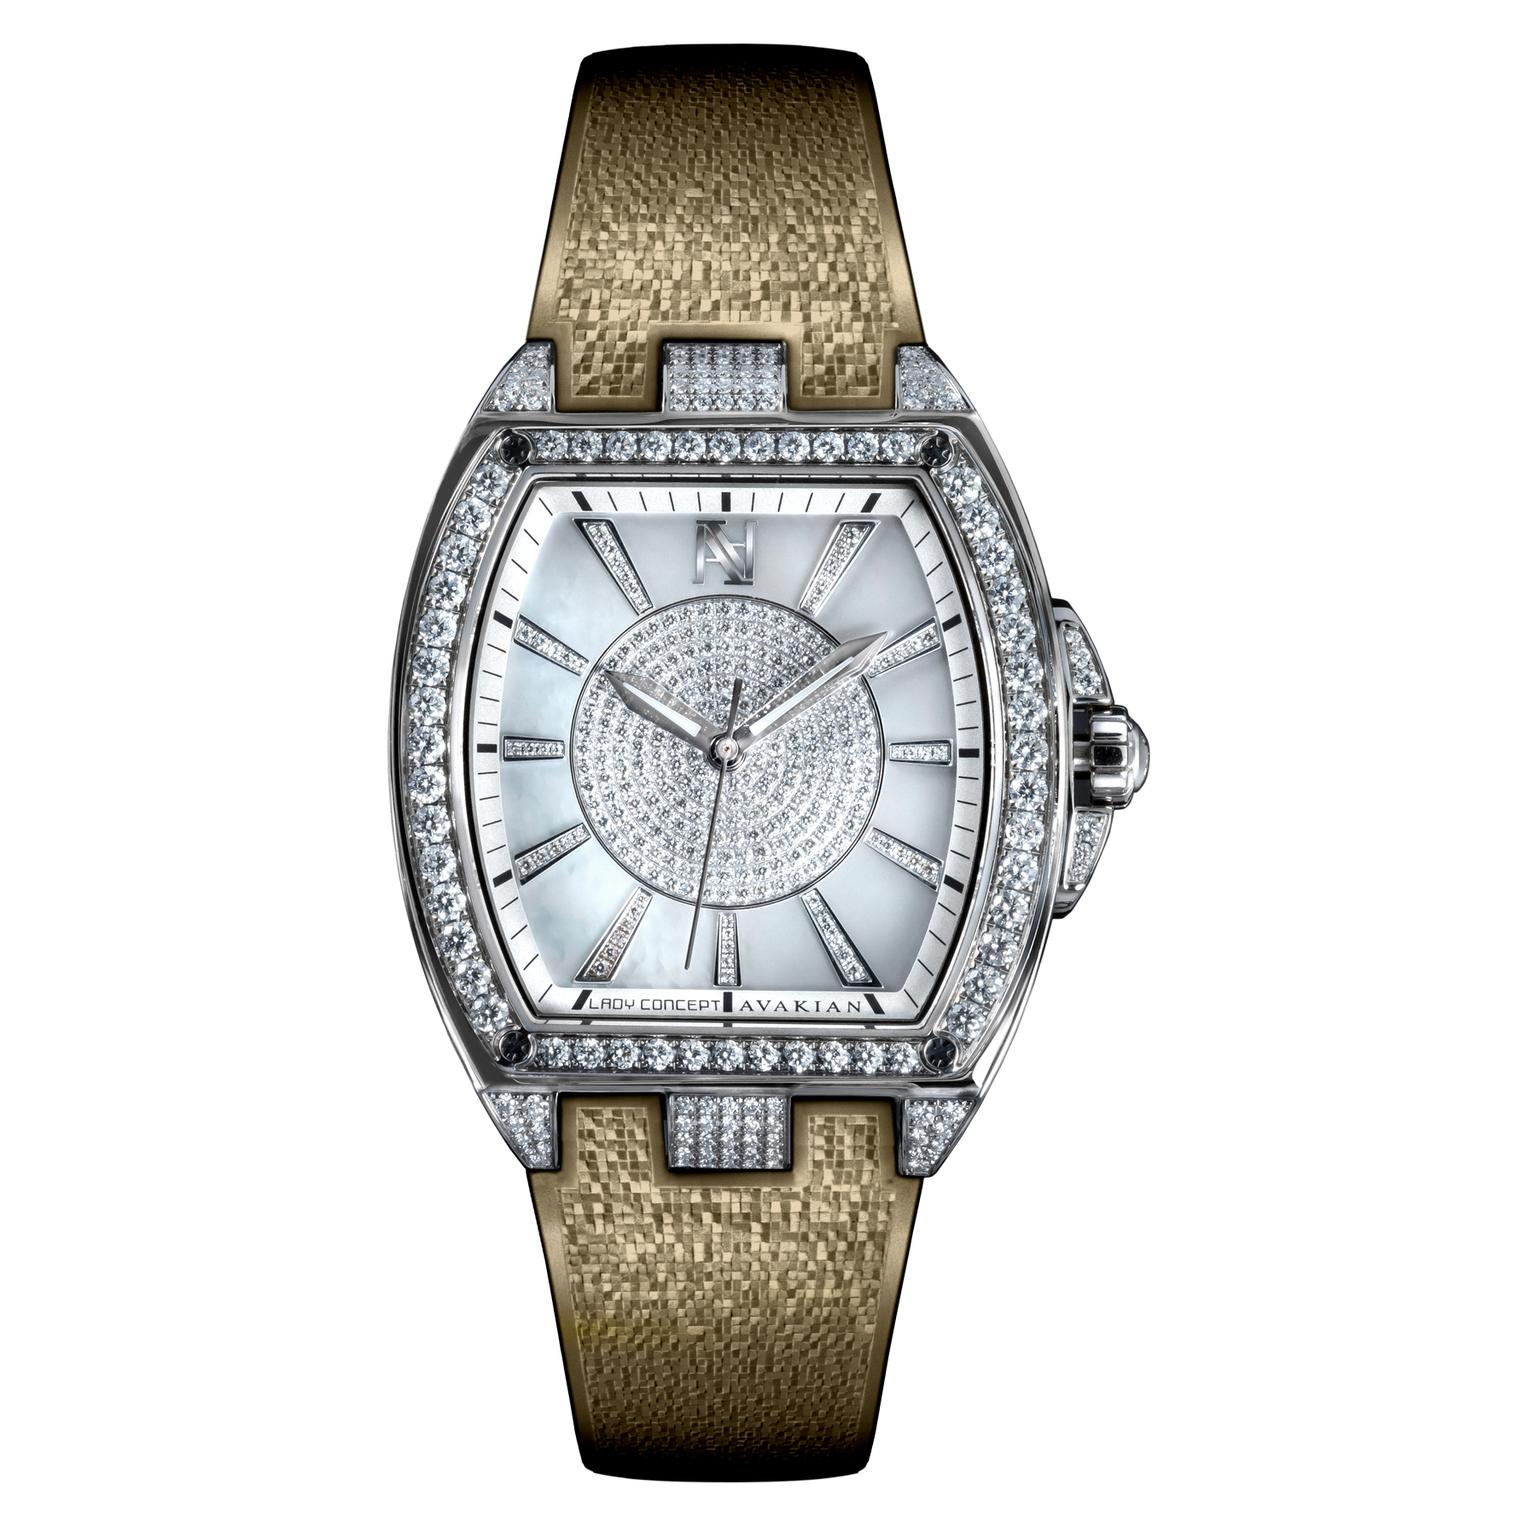 Avakian Lady Concept Taupe watch